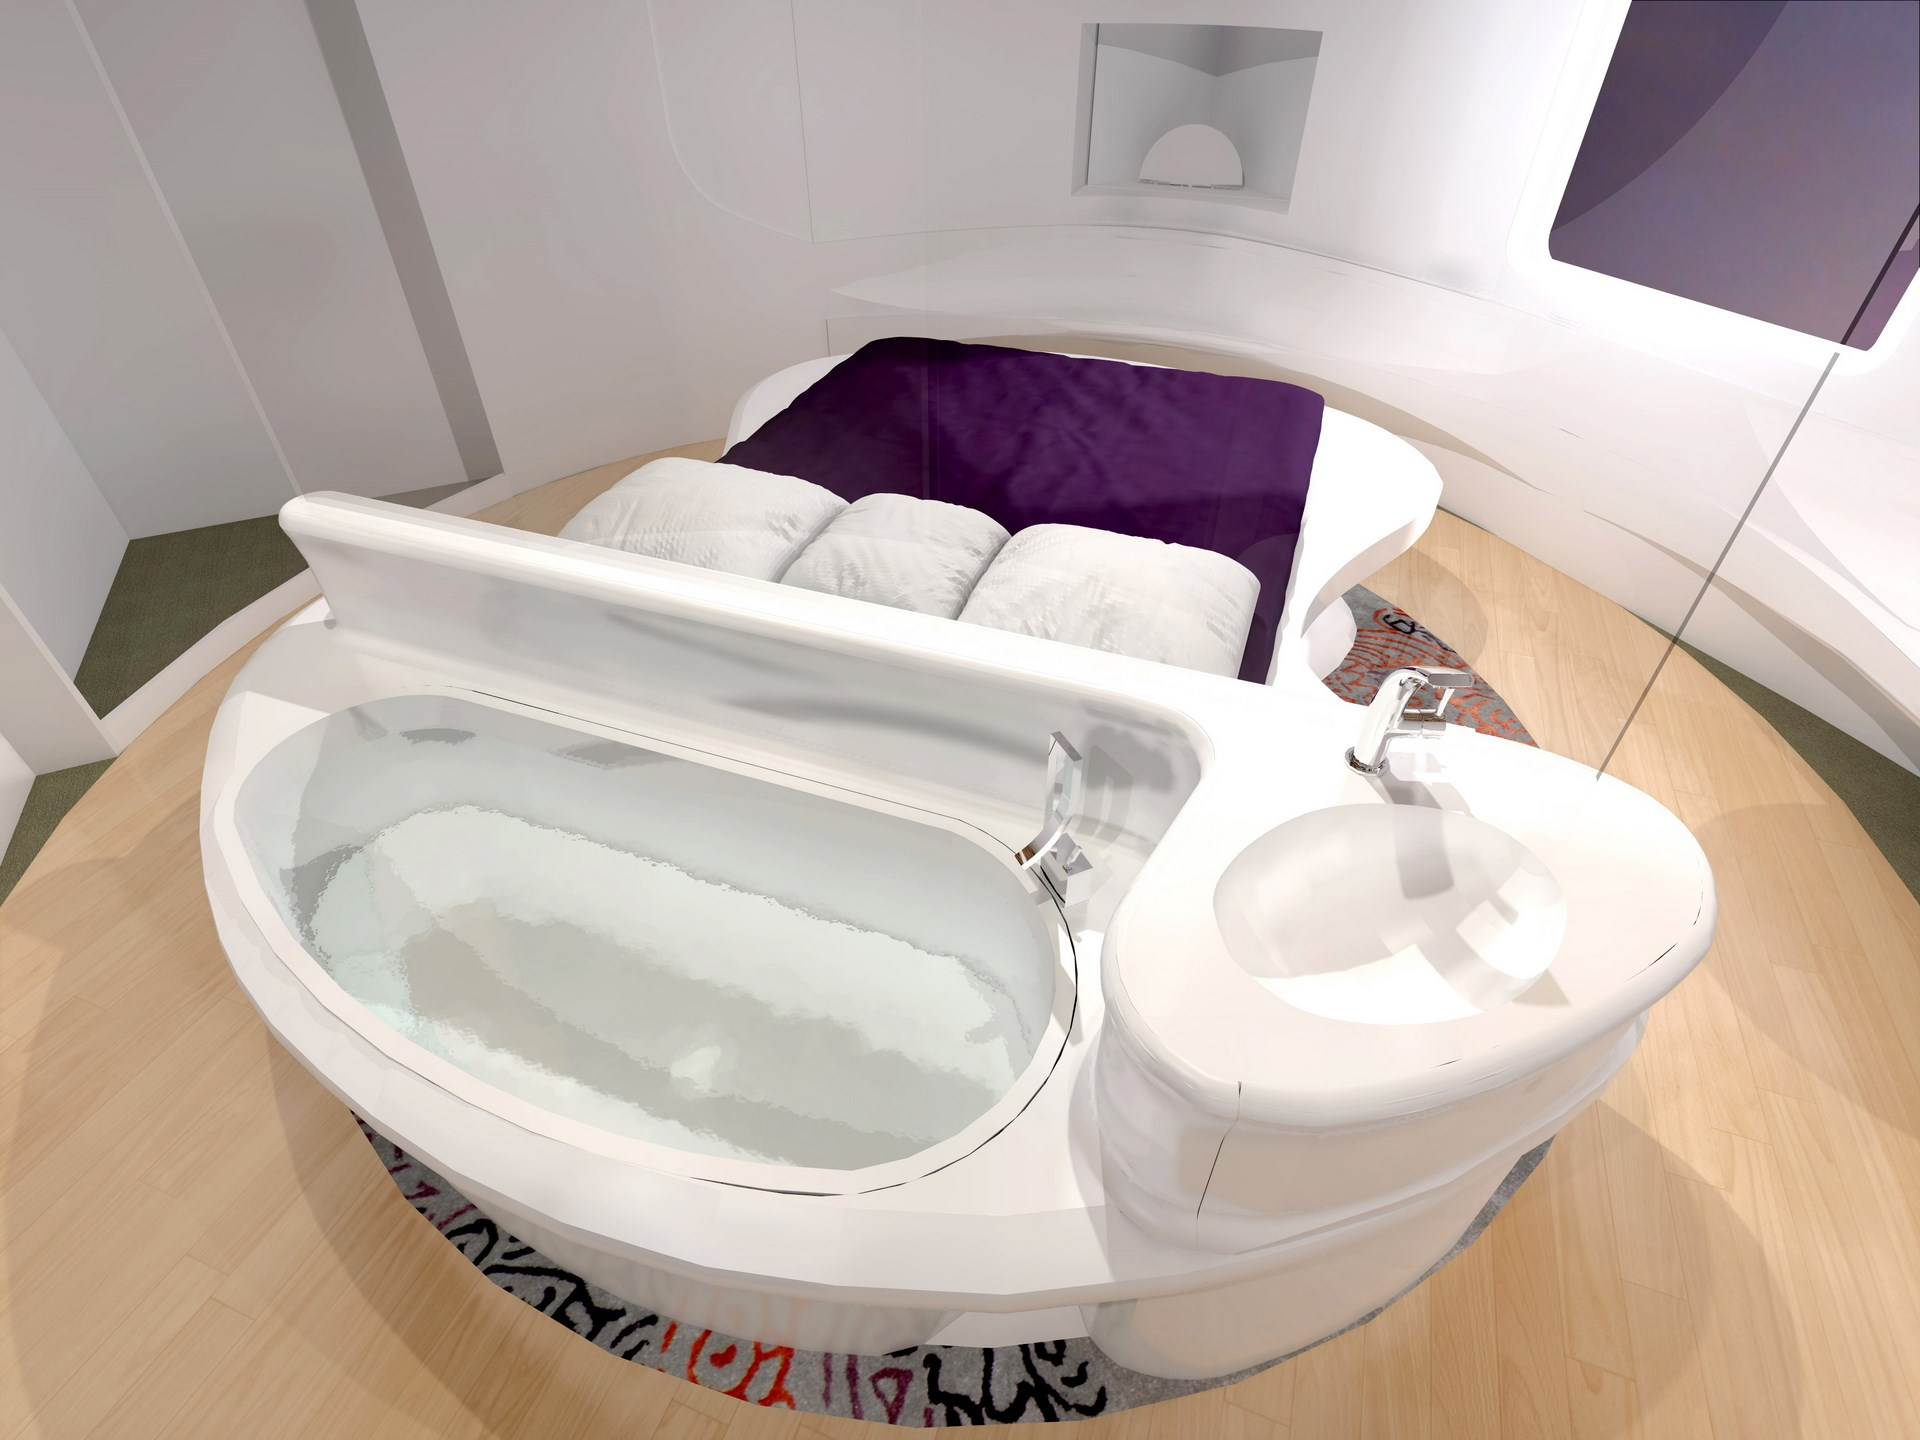 jaccuzzi concept hotel innovant agence avous